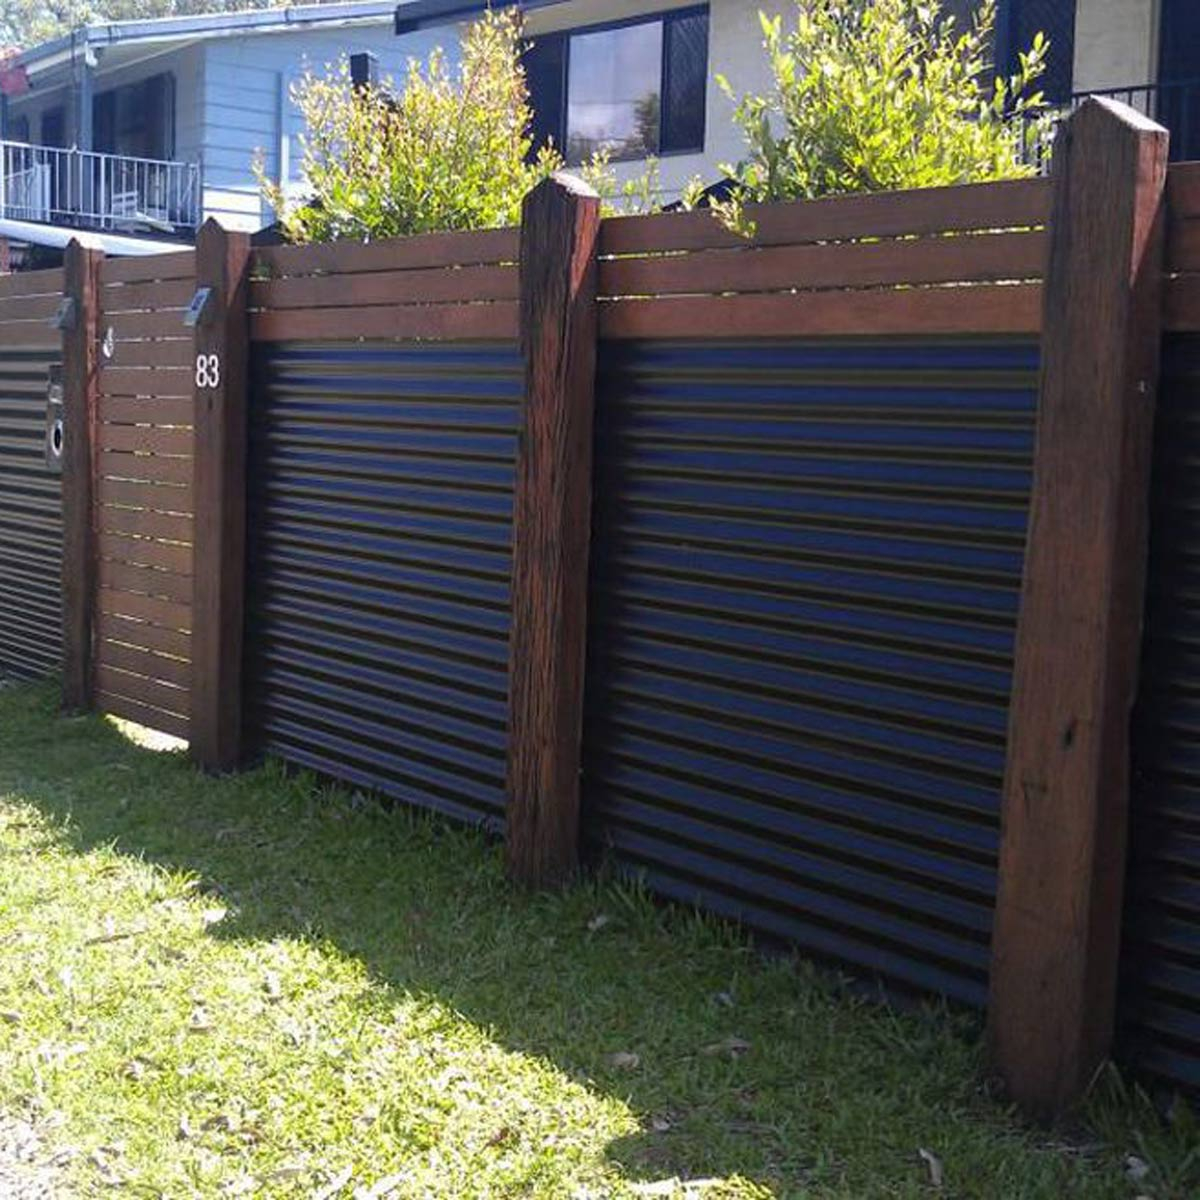 Yard Fencing 10 Modern Fence Ideas Family Handyman for 10 Smart Ideas How to Upgrade Cheap Backyard Fencing